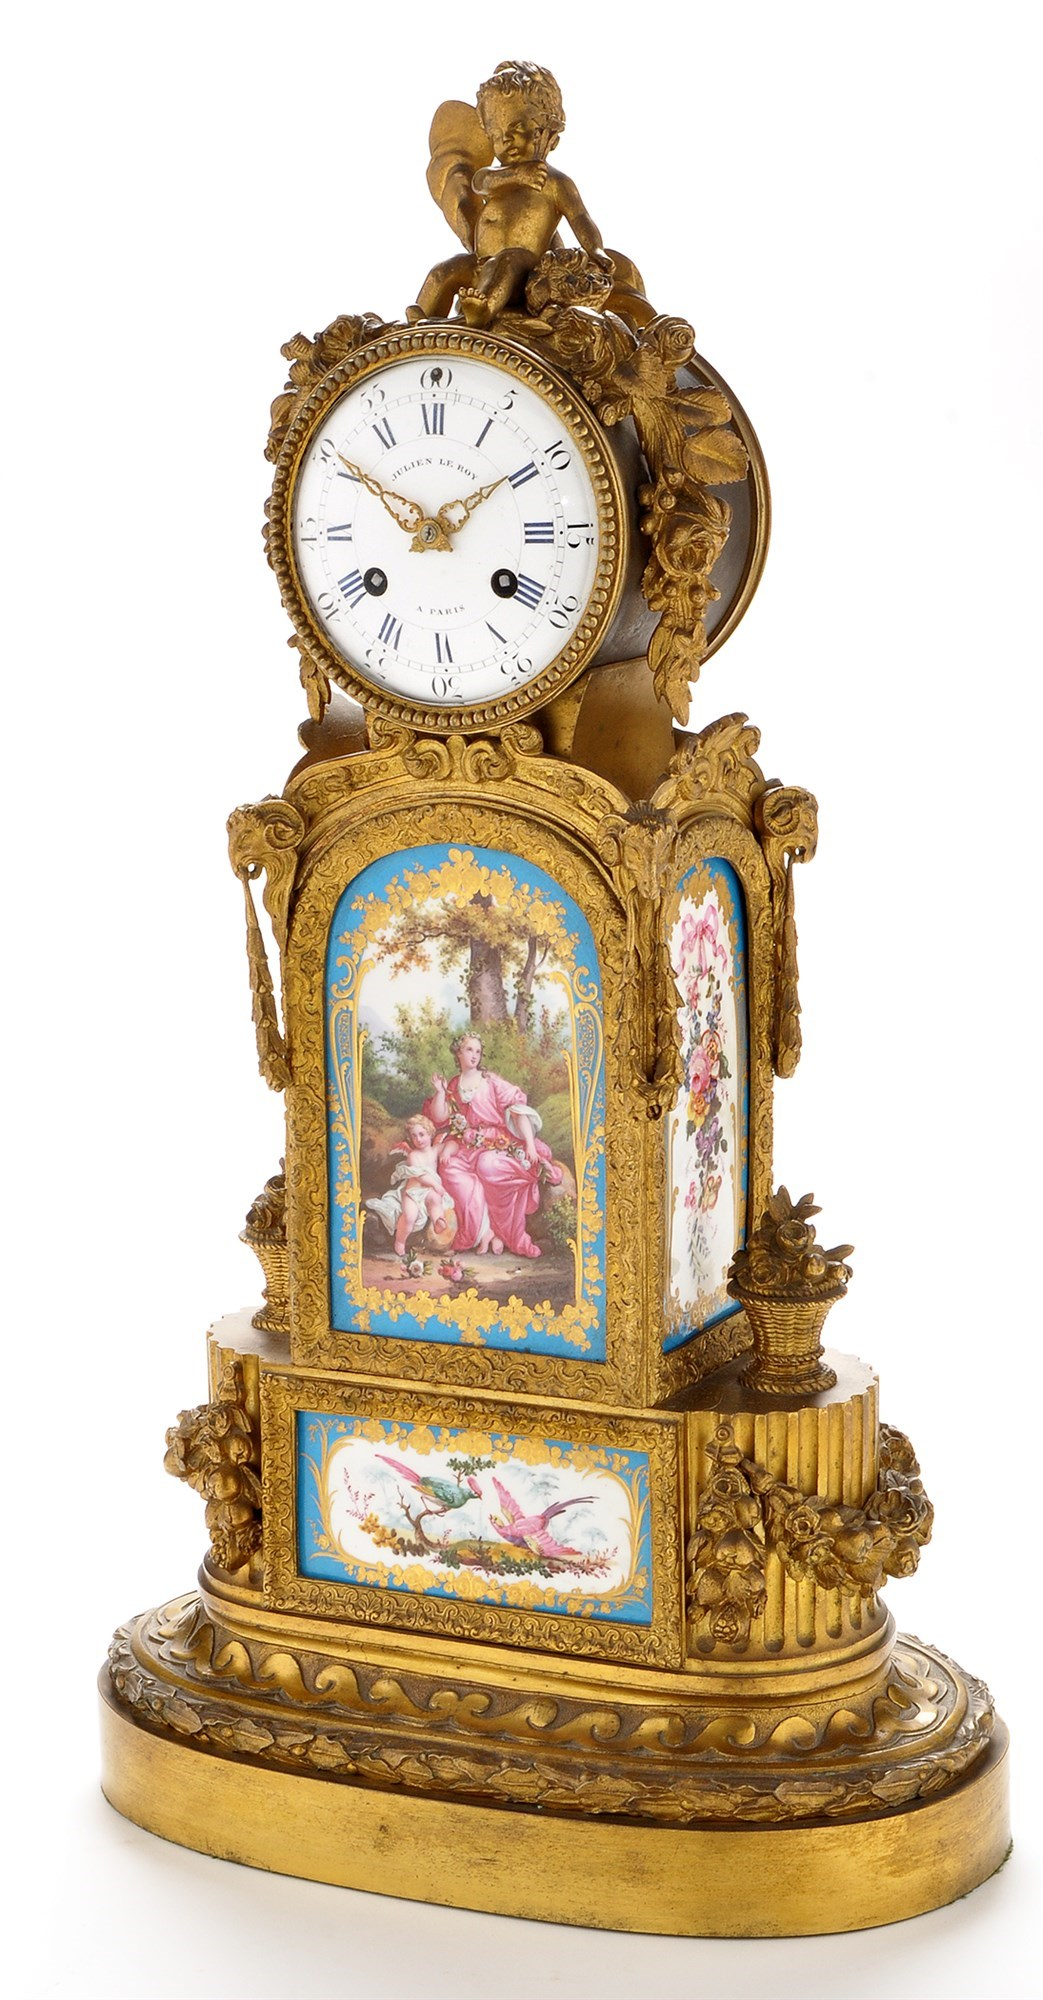 Julien Le Roy, Paris: an impressive French gilt bronze and porcelain moulded mantel clock,